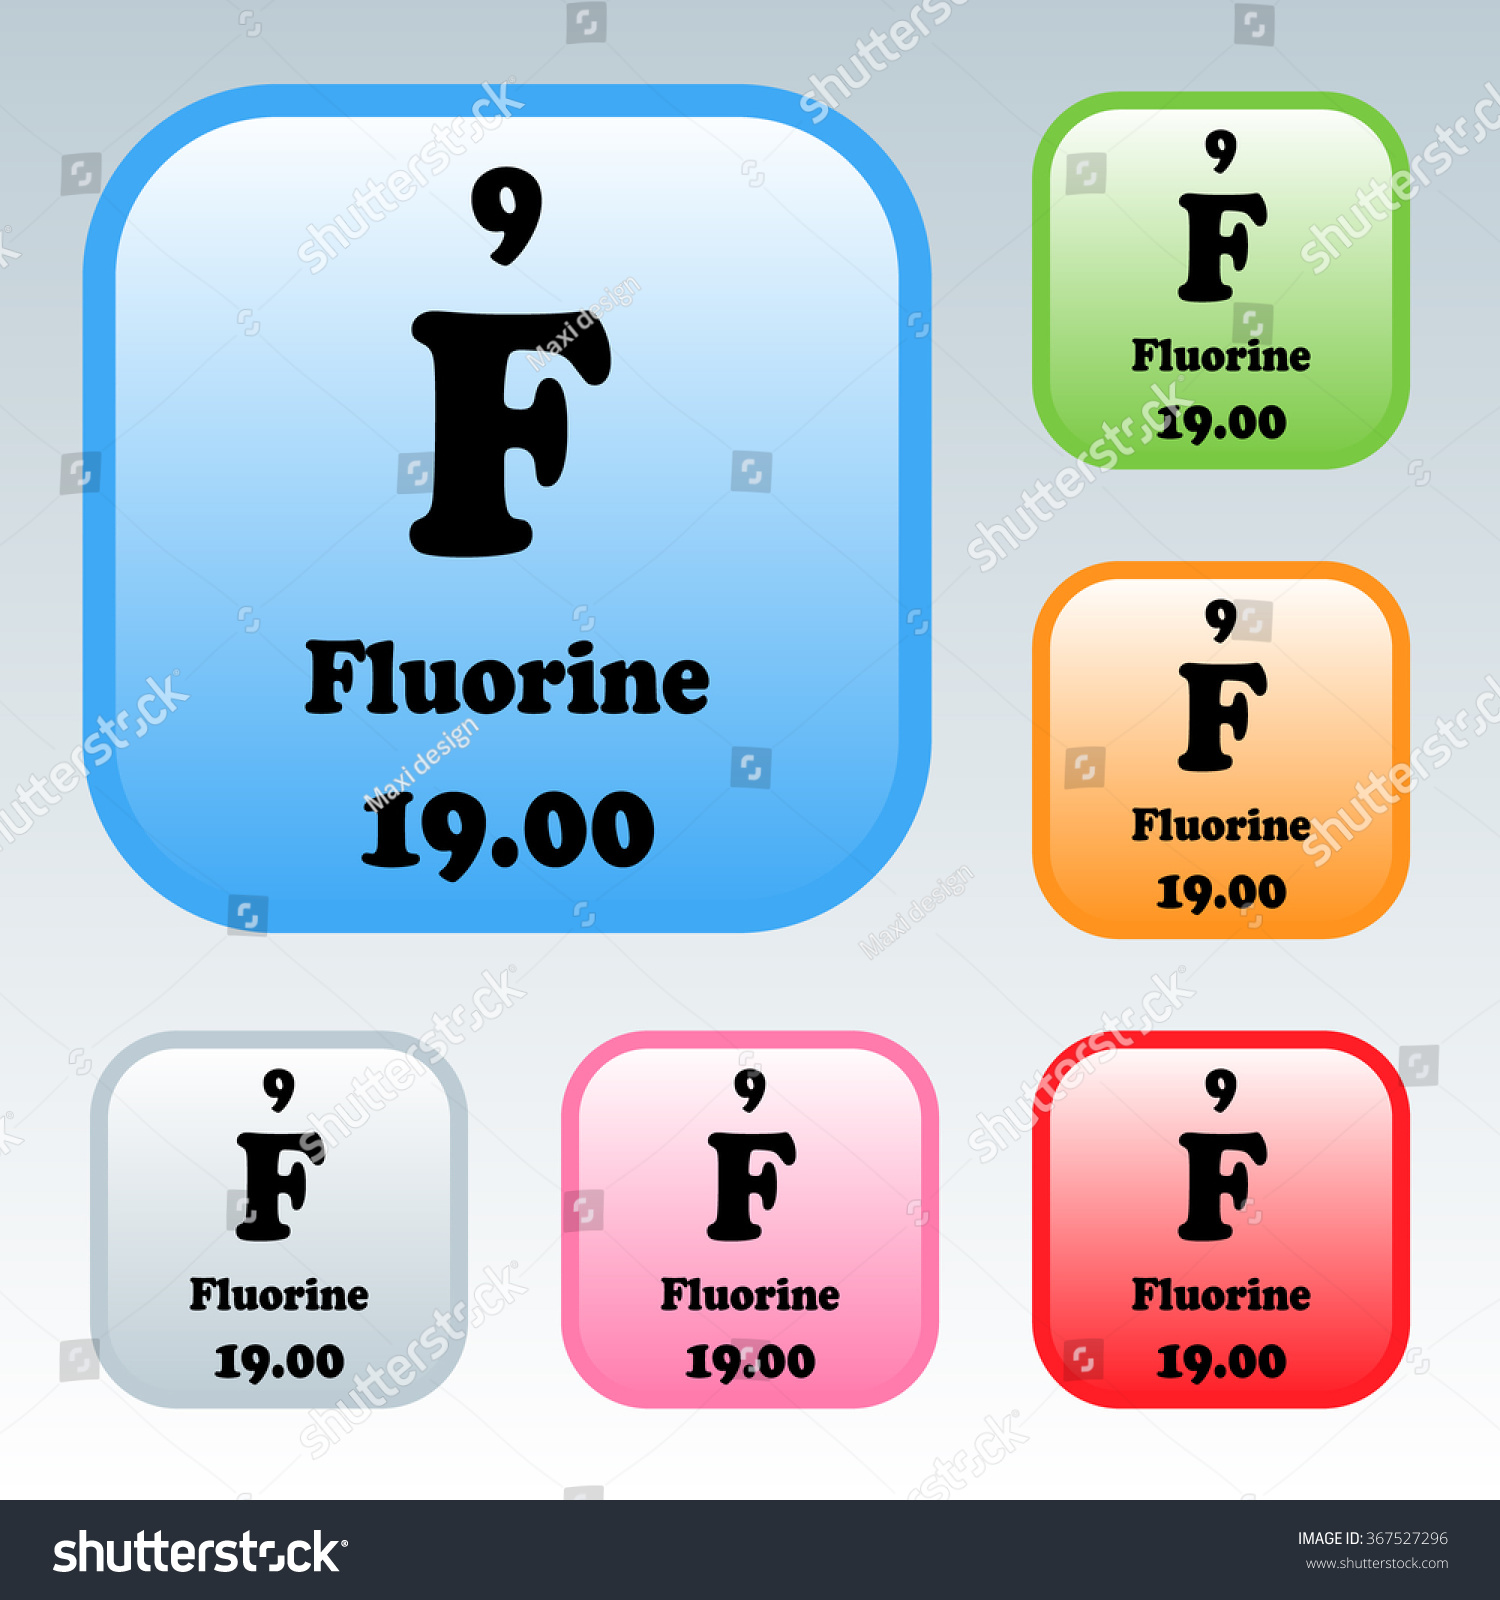 Periodic table of elements fluorine images periodic table images fluorine symbol periodic table images periodic table images periodic table of elements fluorine choice image periodic gamestrikefo Images